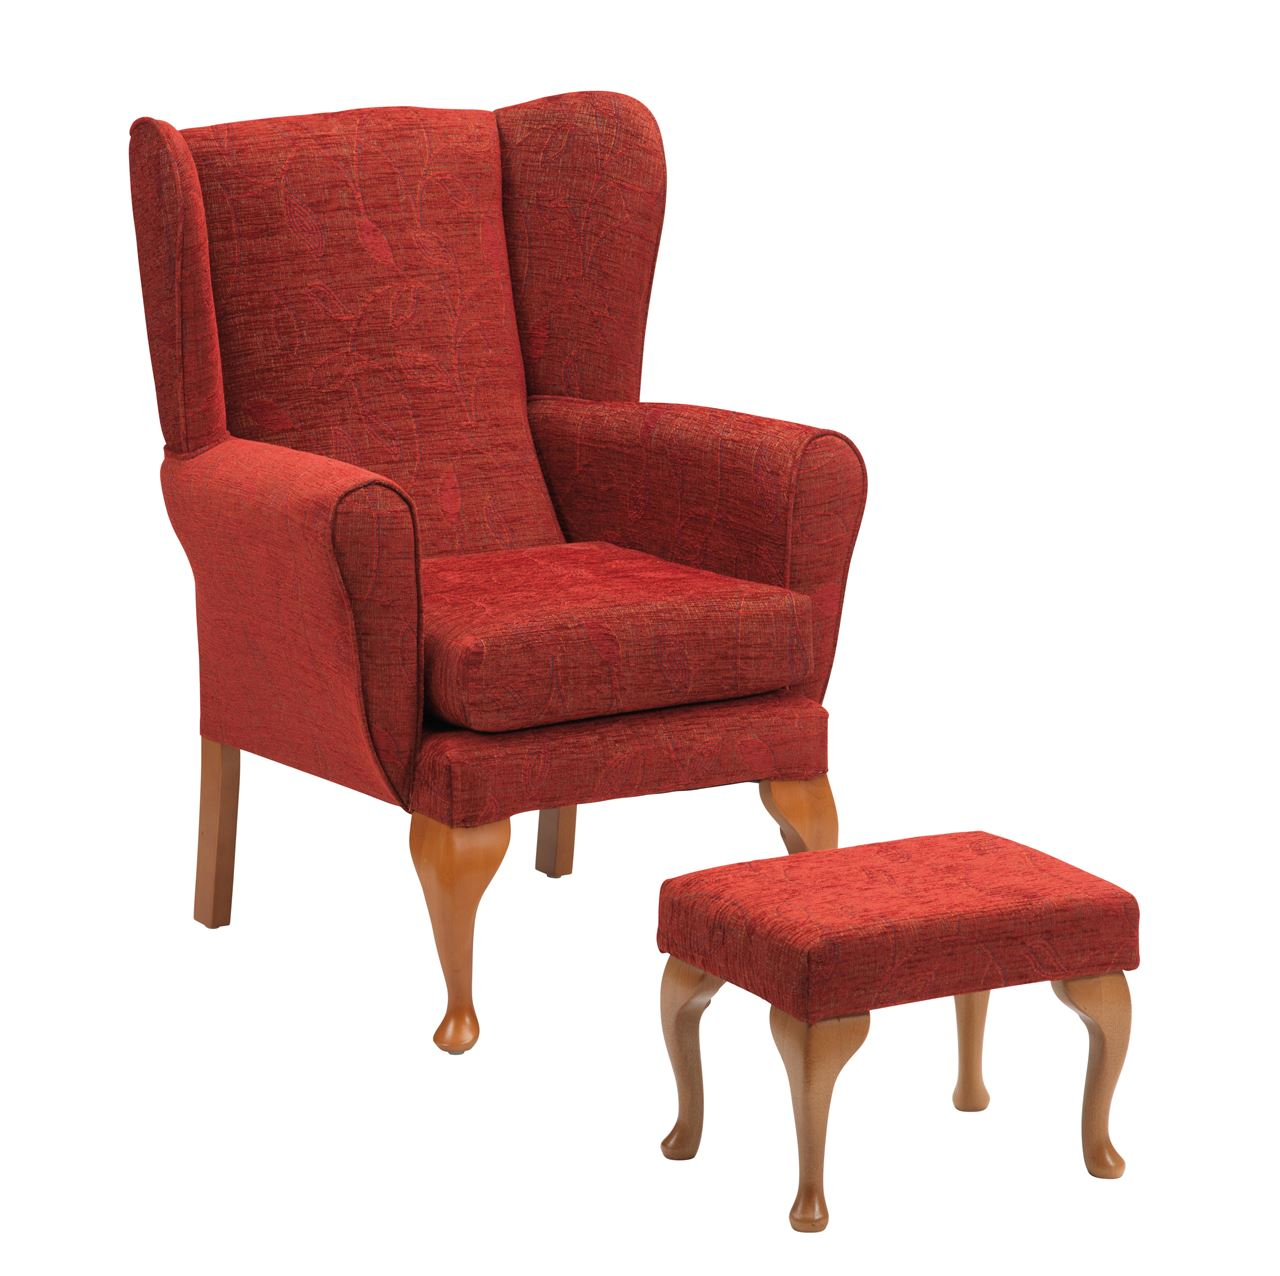 Picture for category Queen Anne Chair/Footstool